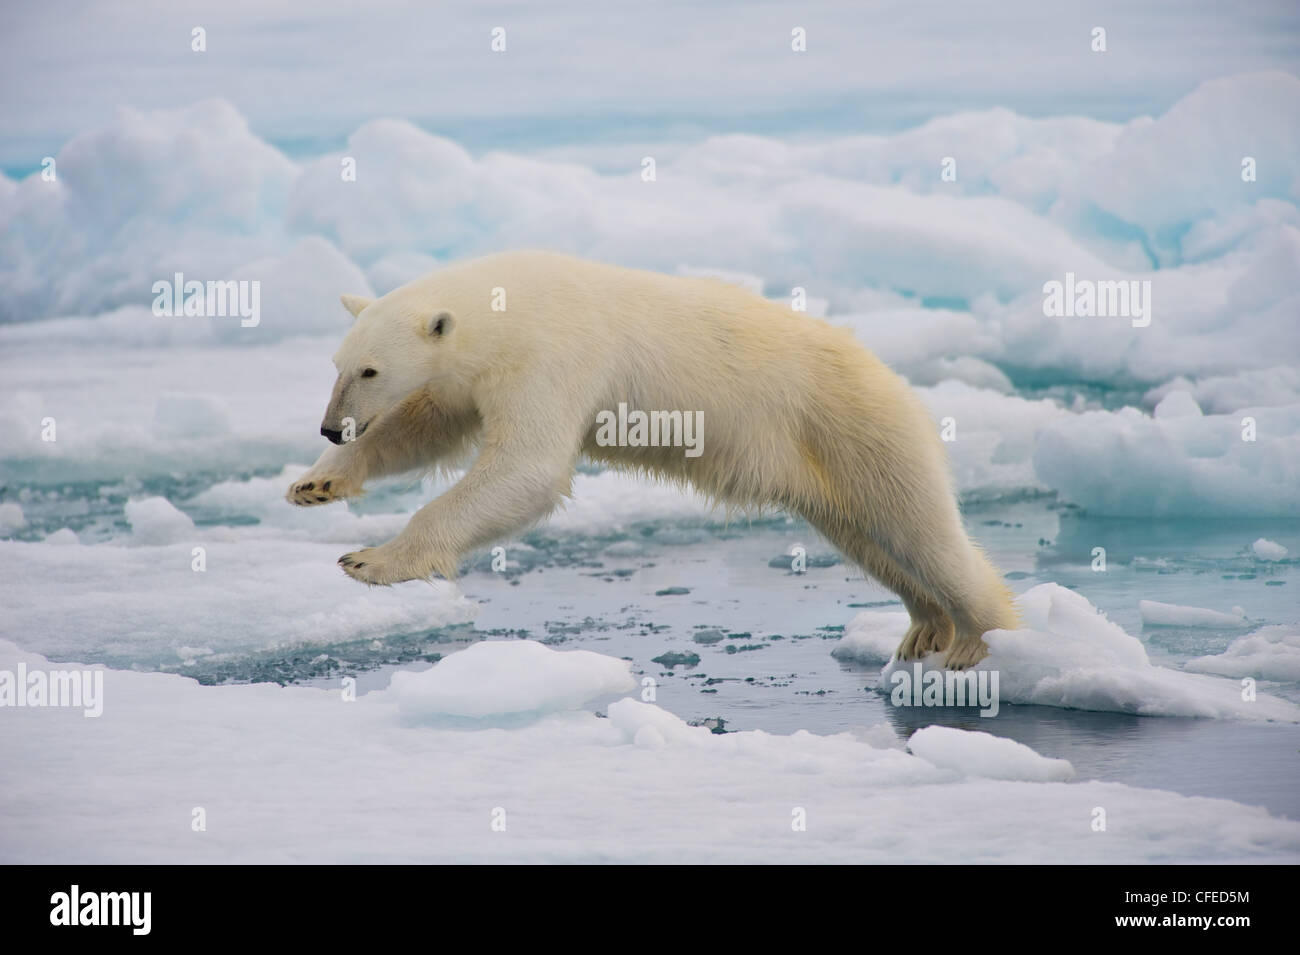 A frame-filling portrait of a male polar bear (Ursus maritimus) jumping in the pack ice, its paws in the air. - Stock Image